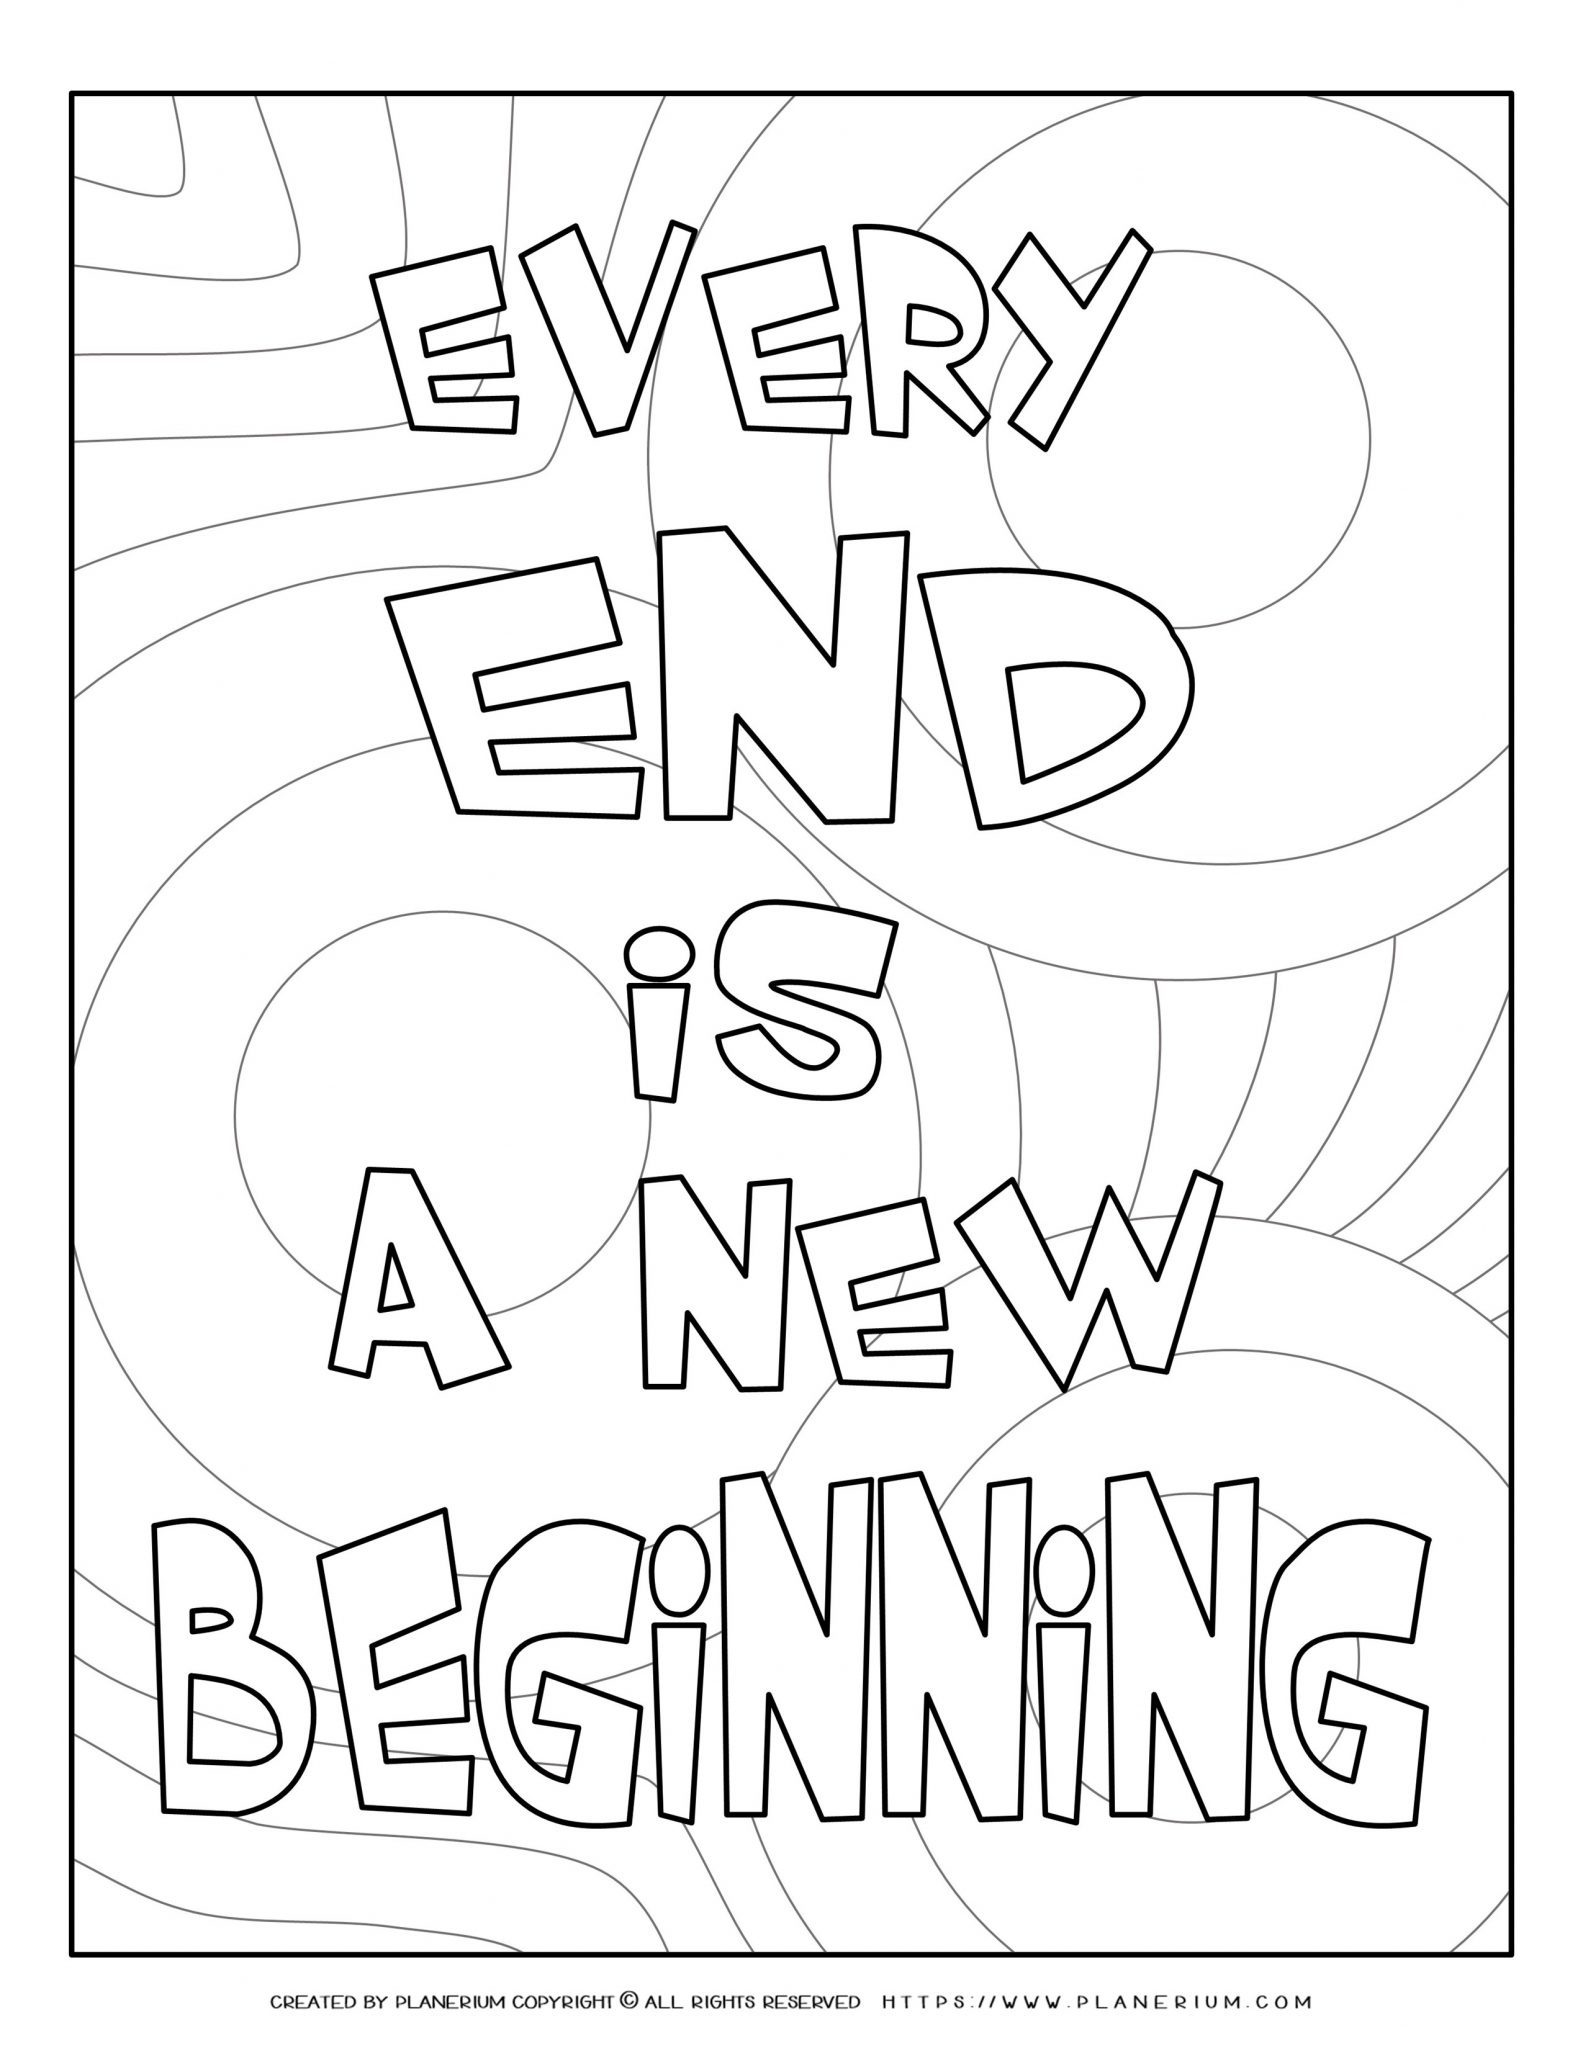 End of Year - Coloring Page - Every End is a New Begining